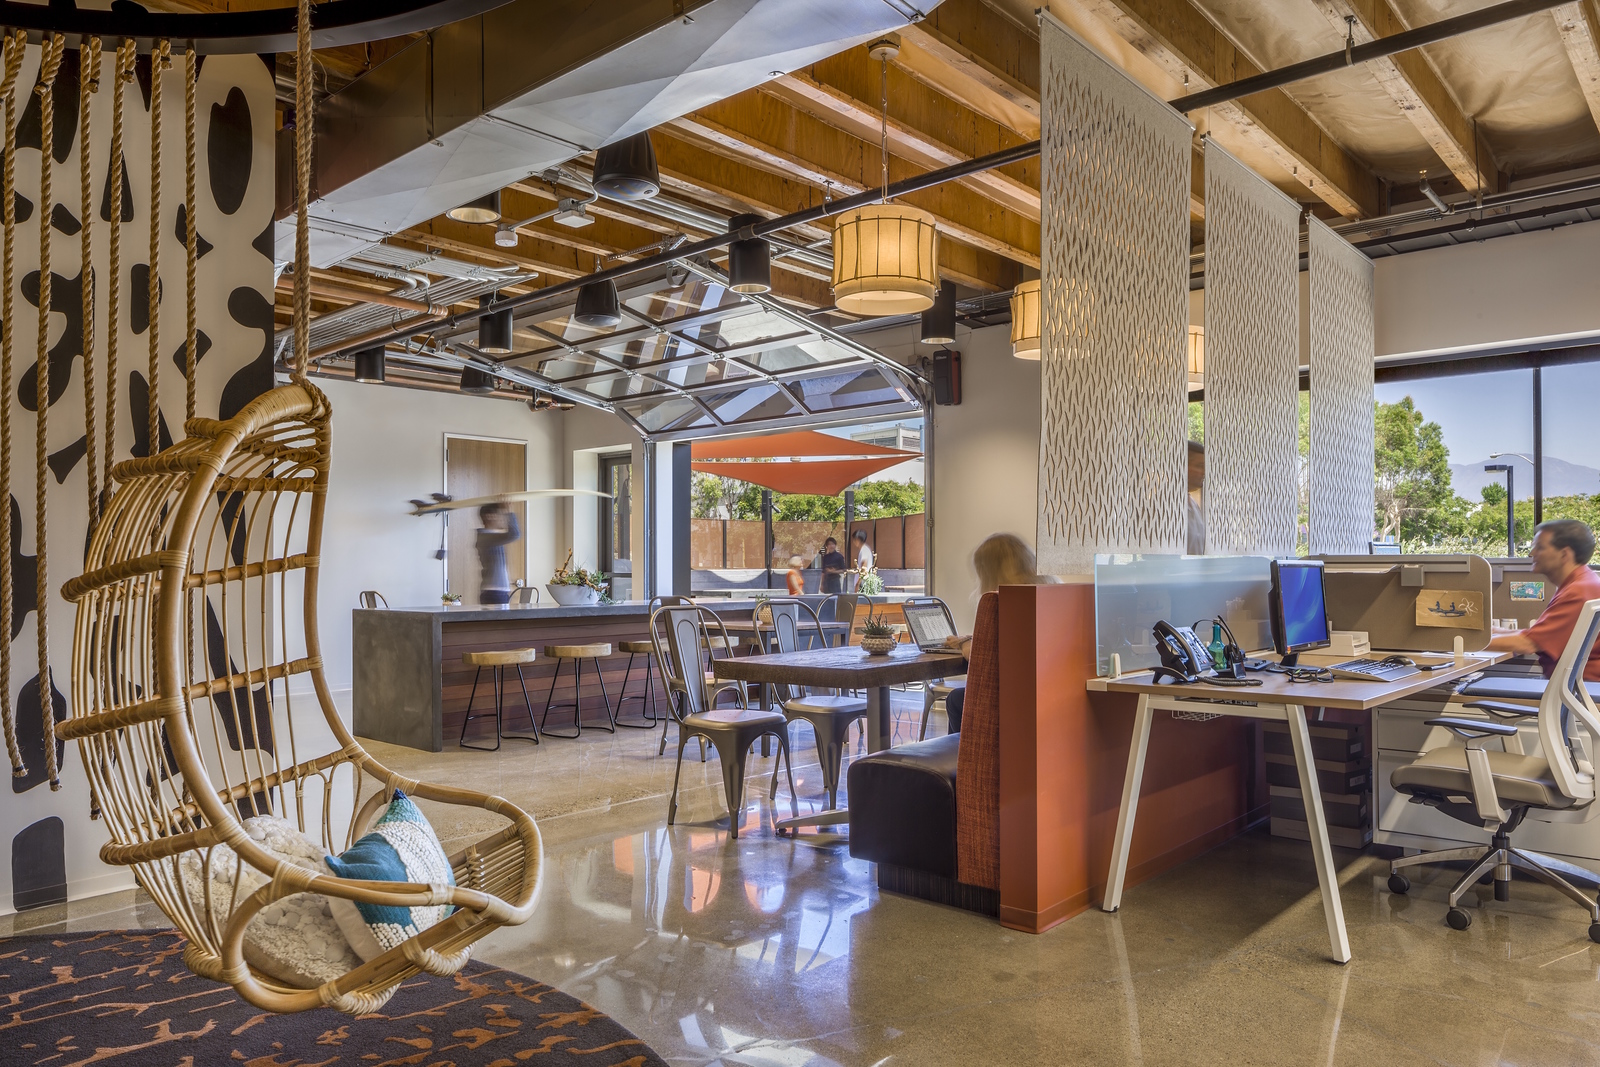 Cool Spaces – The Creative Work Environment